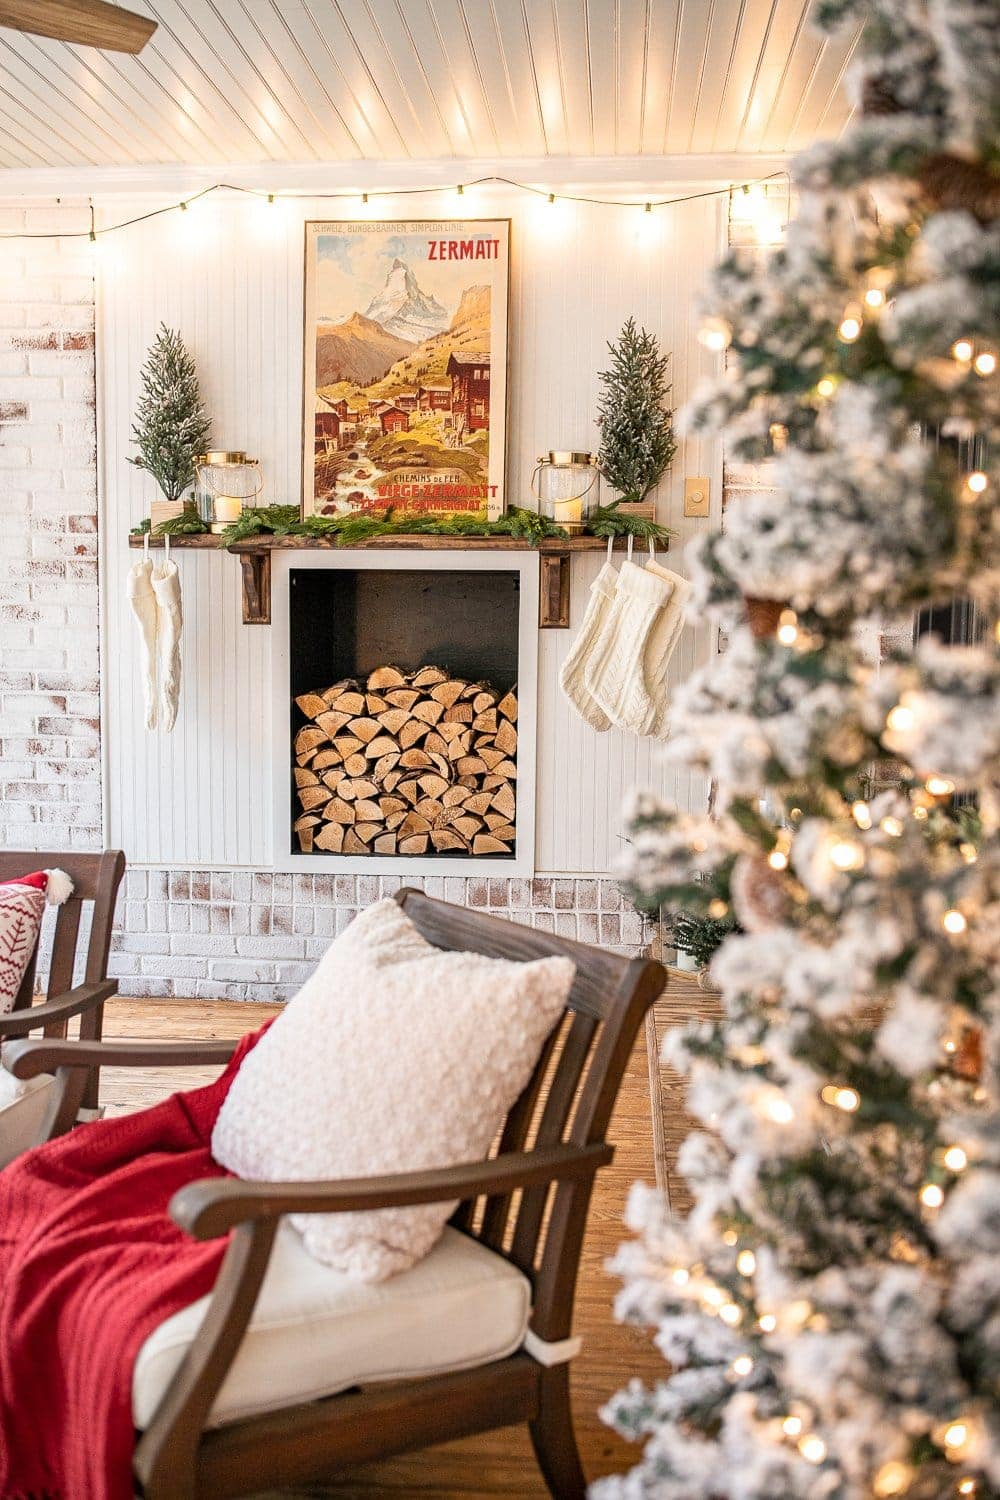 Faux fireplace with wood stack and cozy Christmas decor